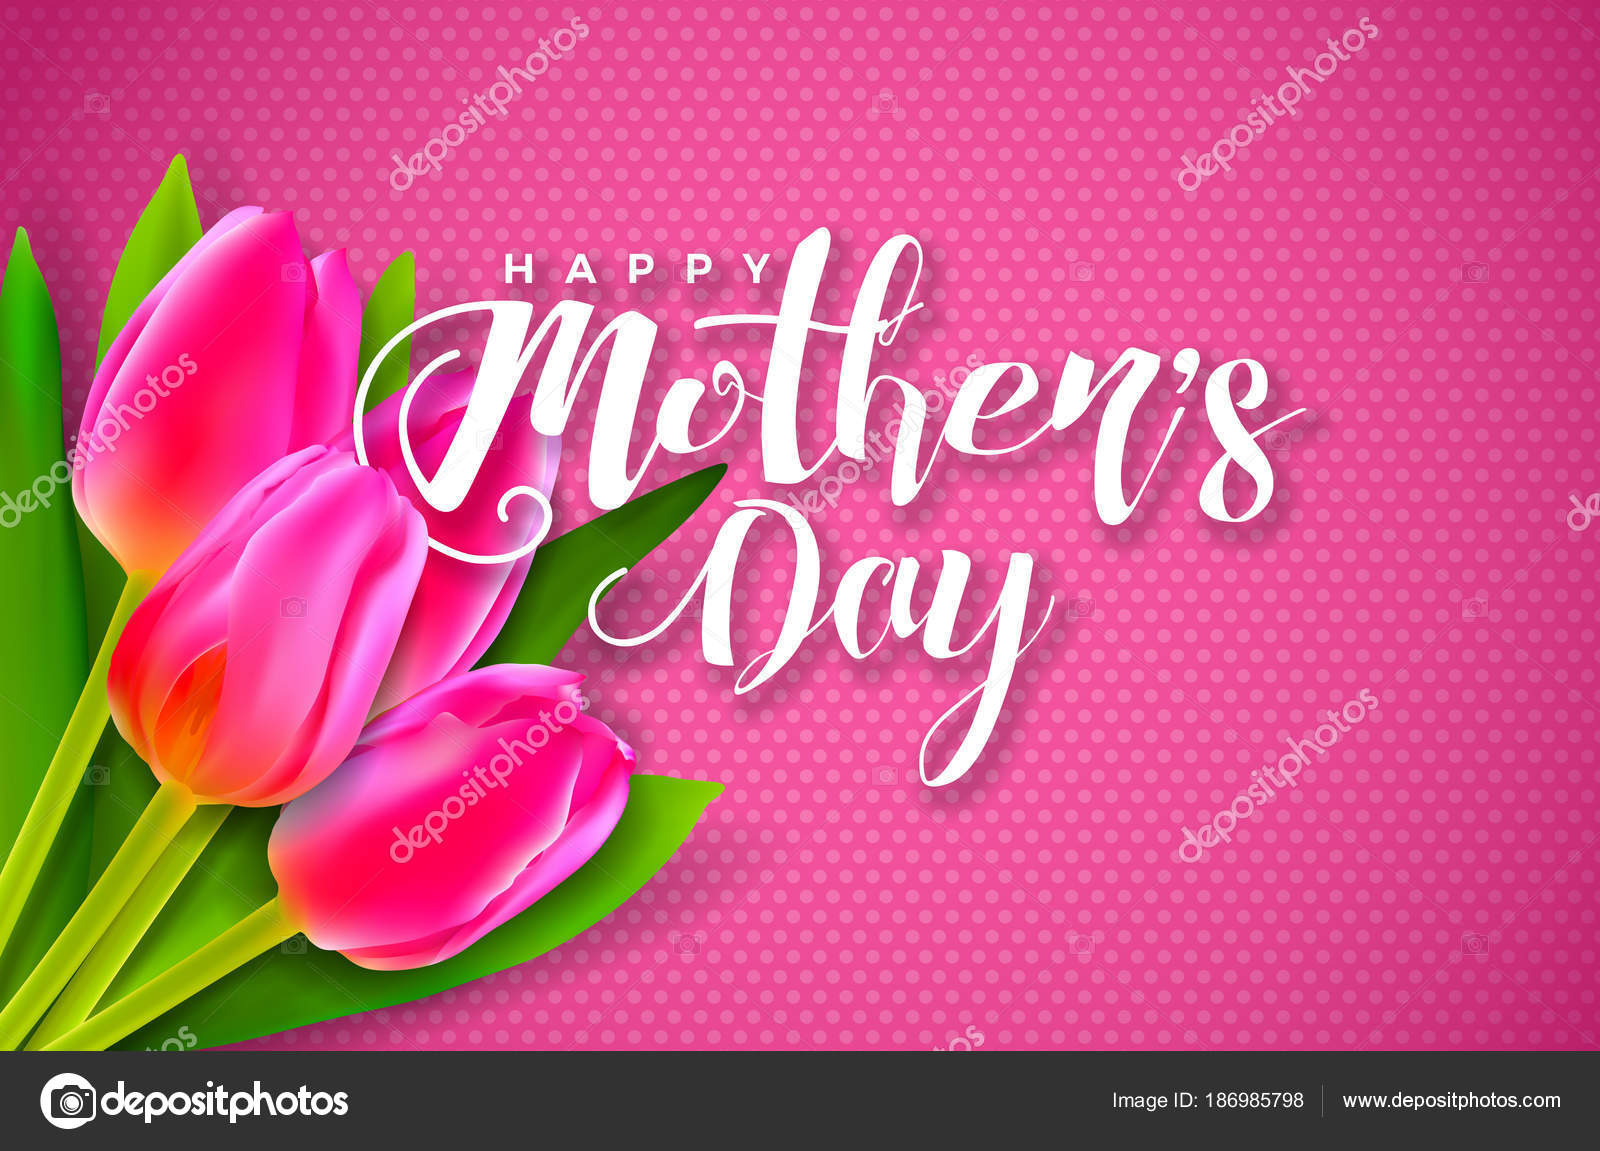 Happy mothers day greeting card with flower on pink background happy mothers day greeting card with flower on pink background vector celebration illustration template with kristyandbryce Image collections